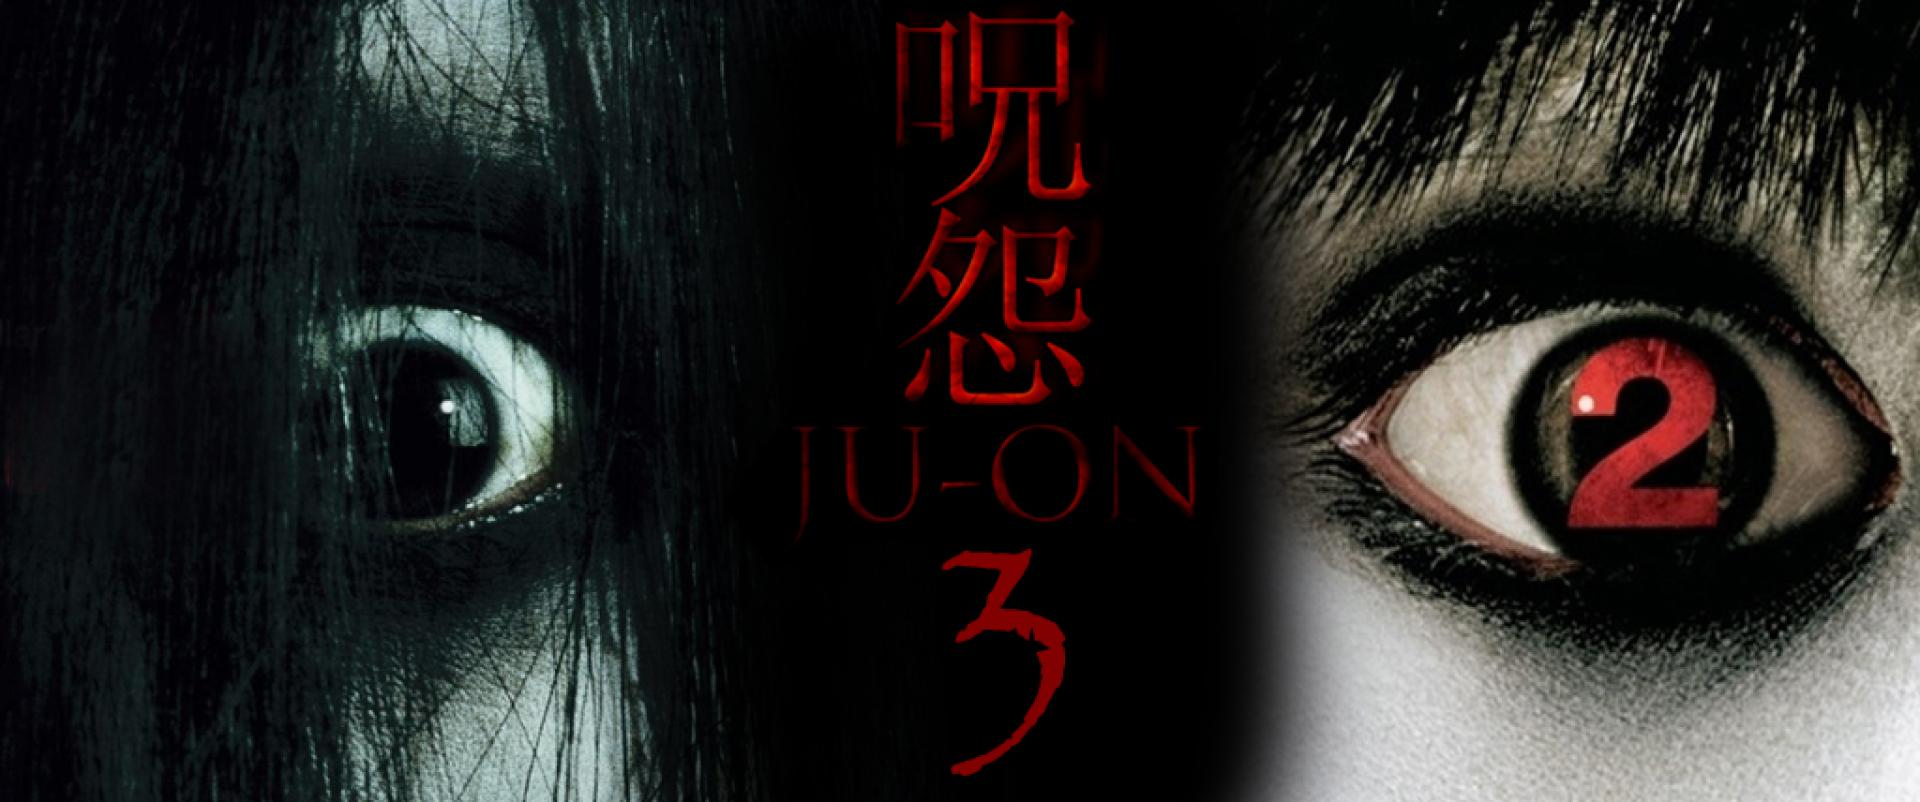 Ju-on Part 3 (2004/2006/2009)